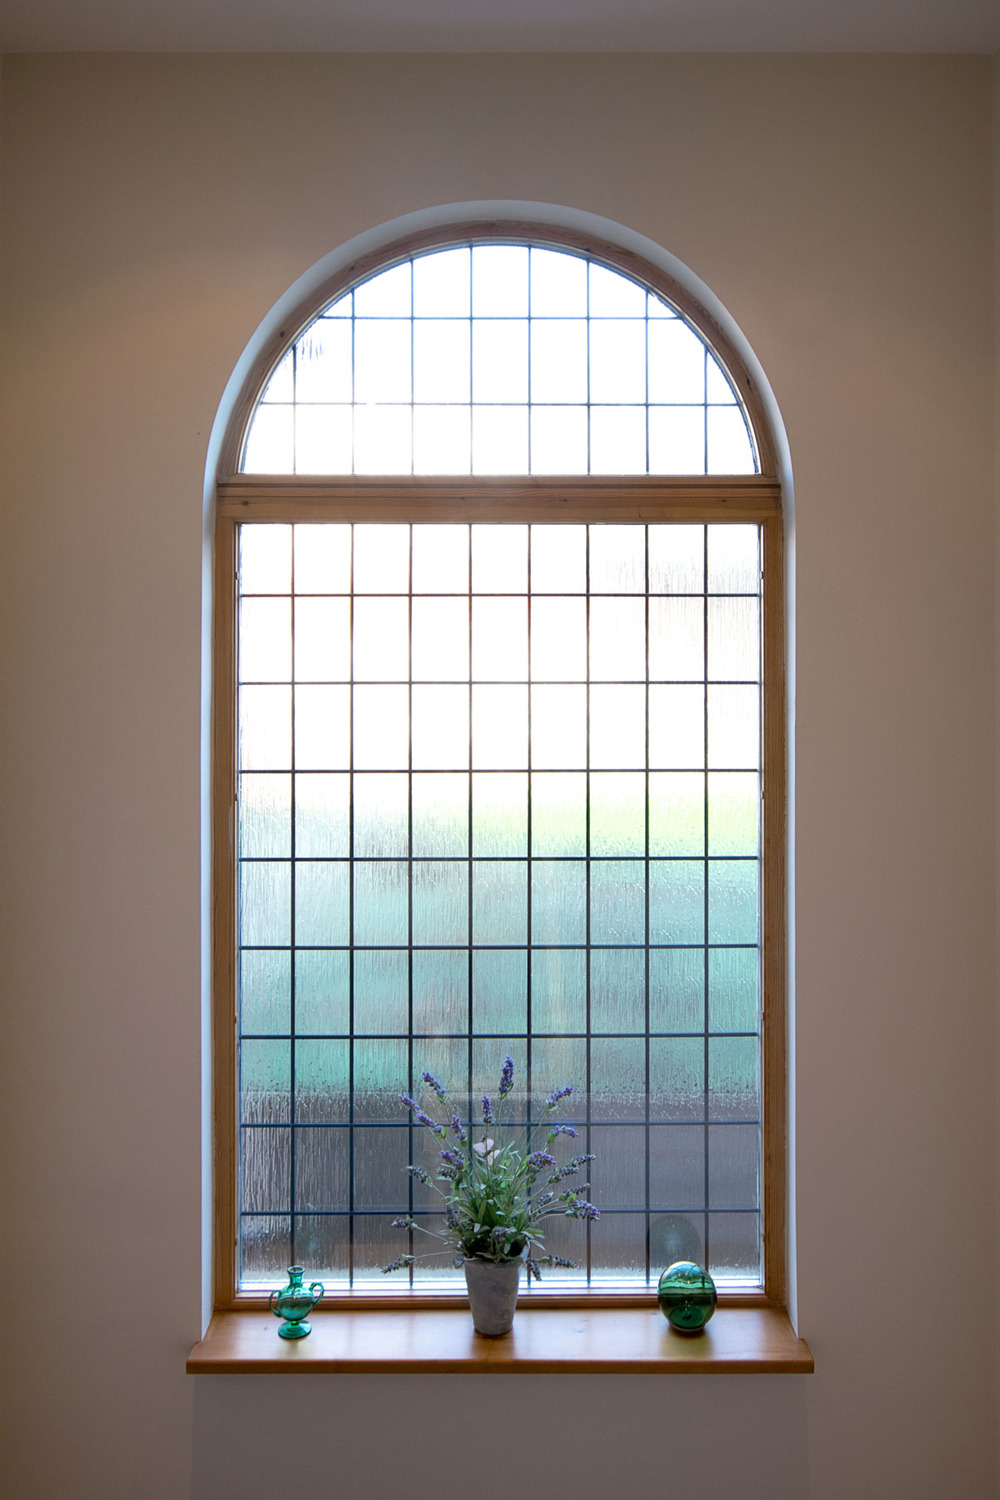 stairs window.jpg